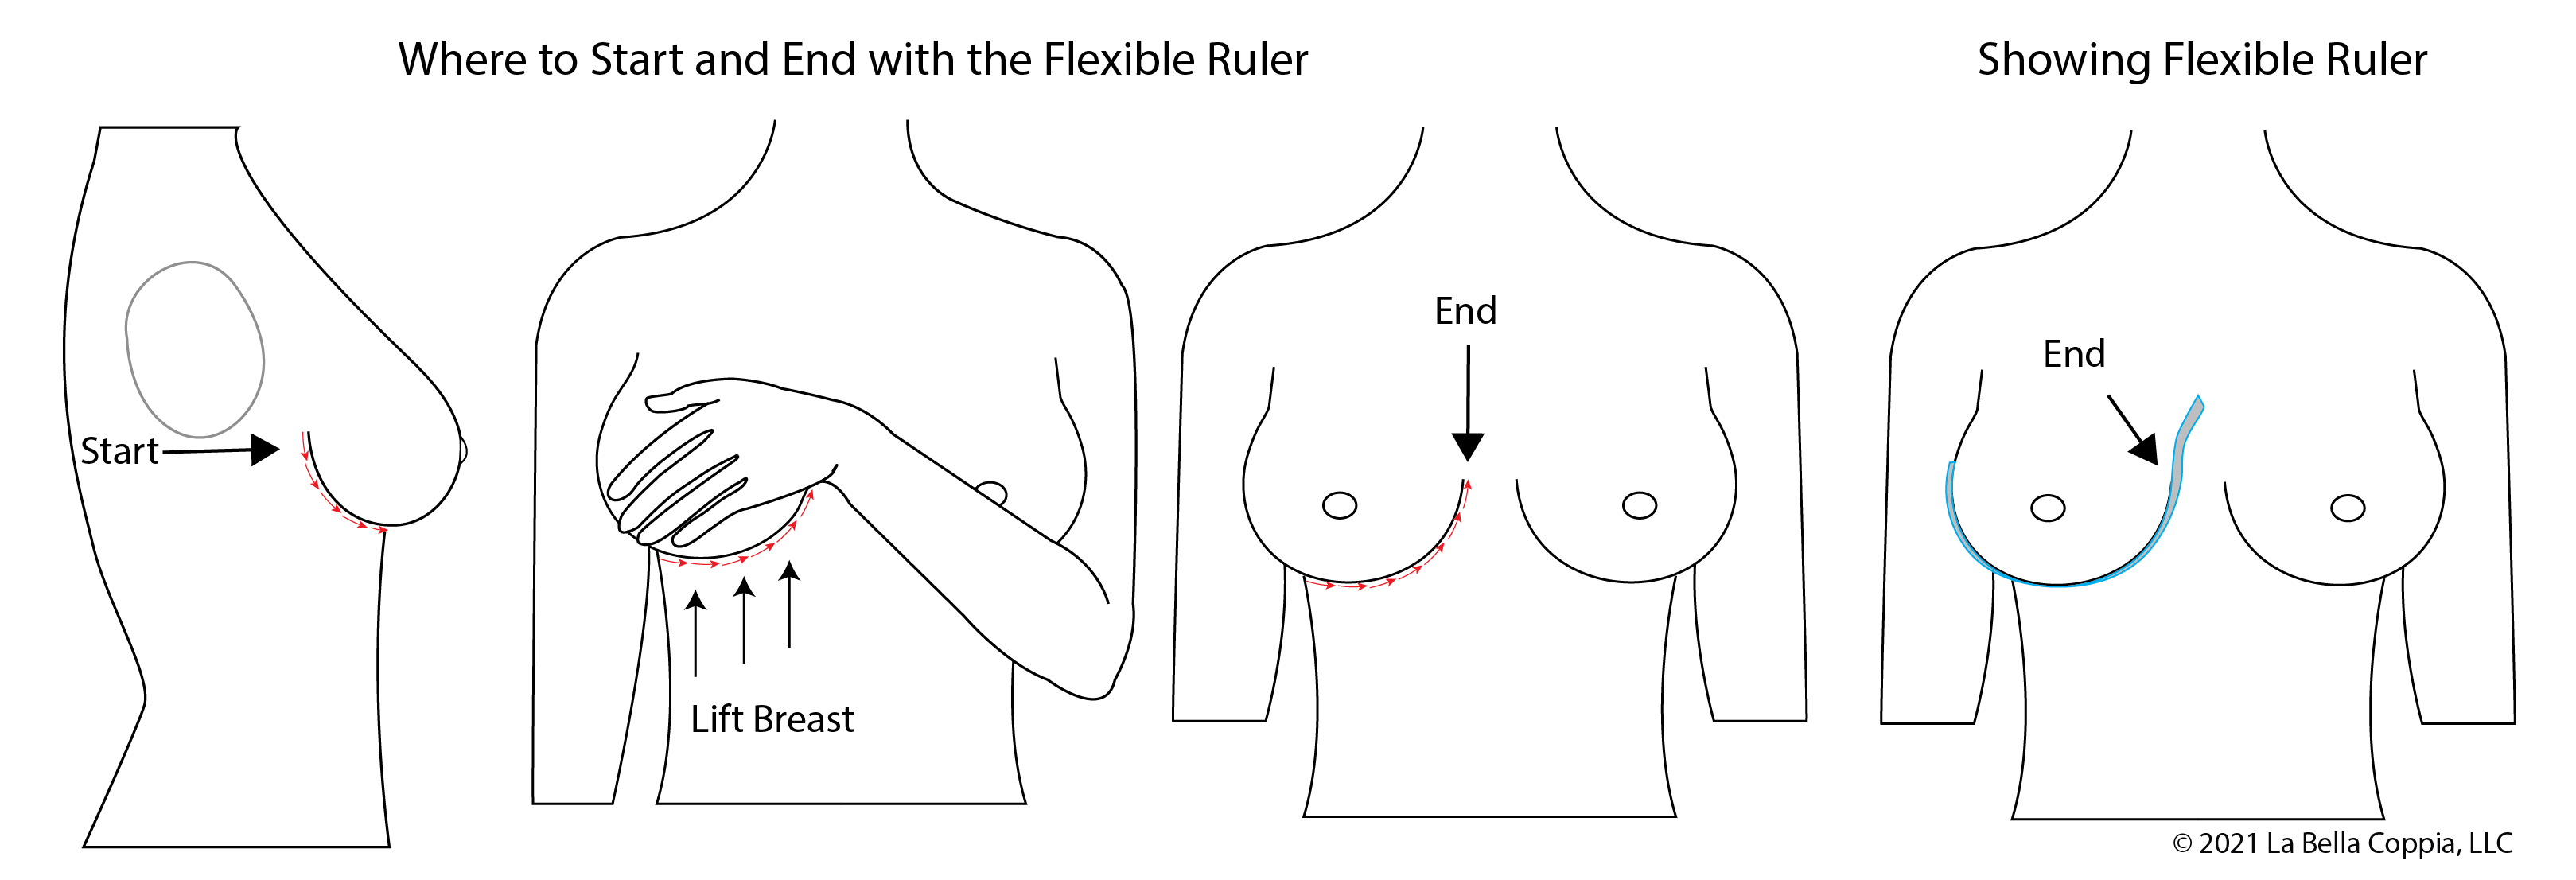 A diagram of a breast root trace, showing a flexible ruler starting at the outside of the breast root, curving around the IMF under the breast, and ending